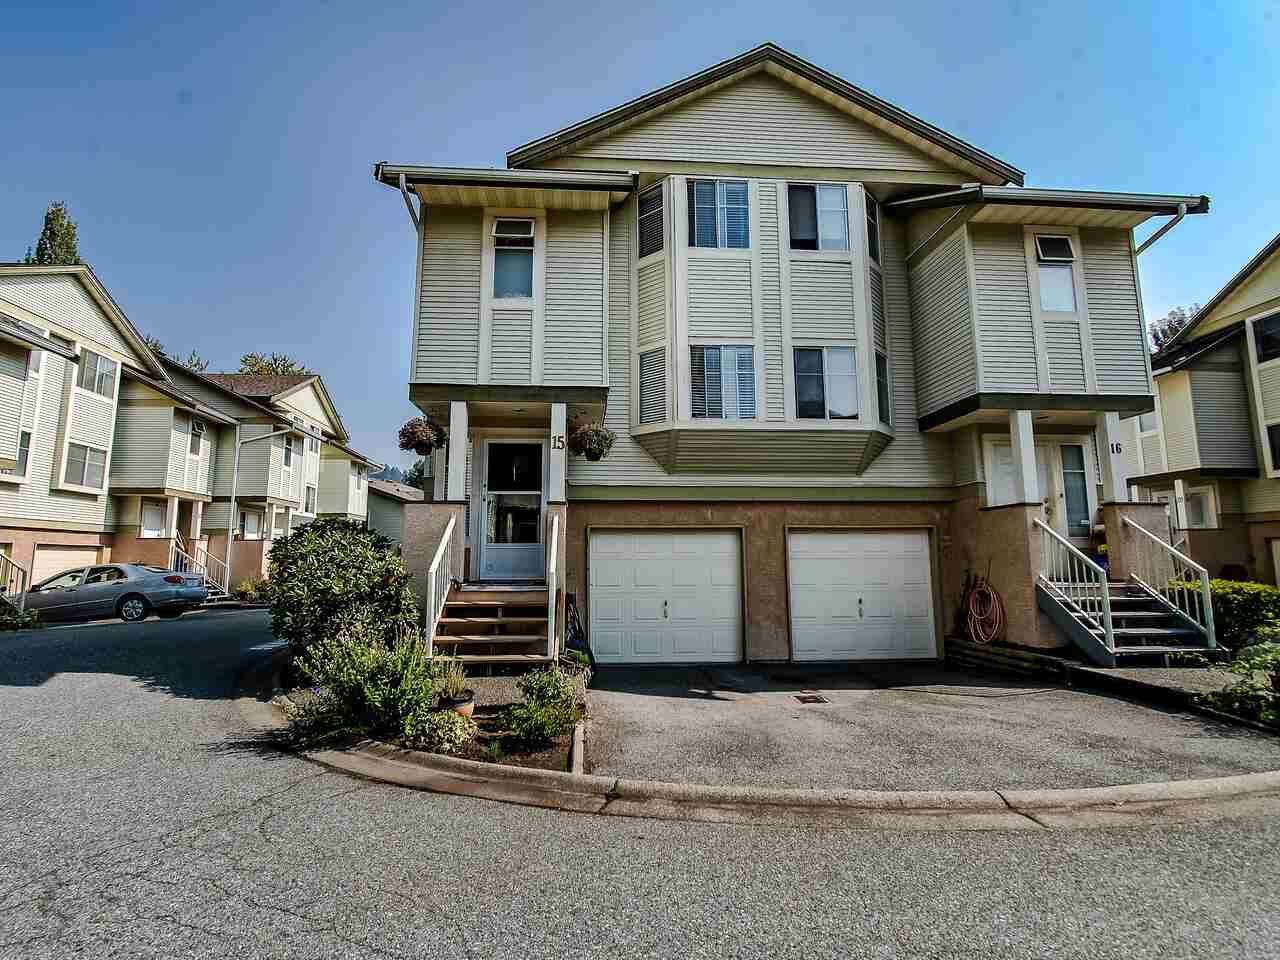 Main Photo: 15 1318 BRUNETTE Avenue in Coquitlam: Maillardville Townhouse for sale : MLS®# R2498474